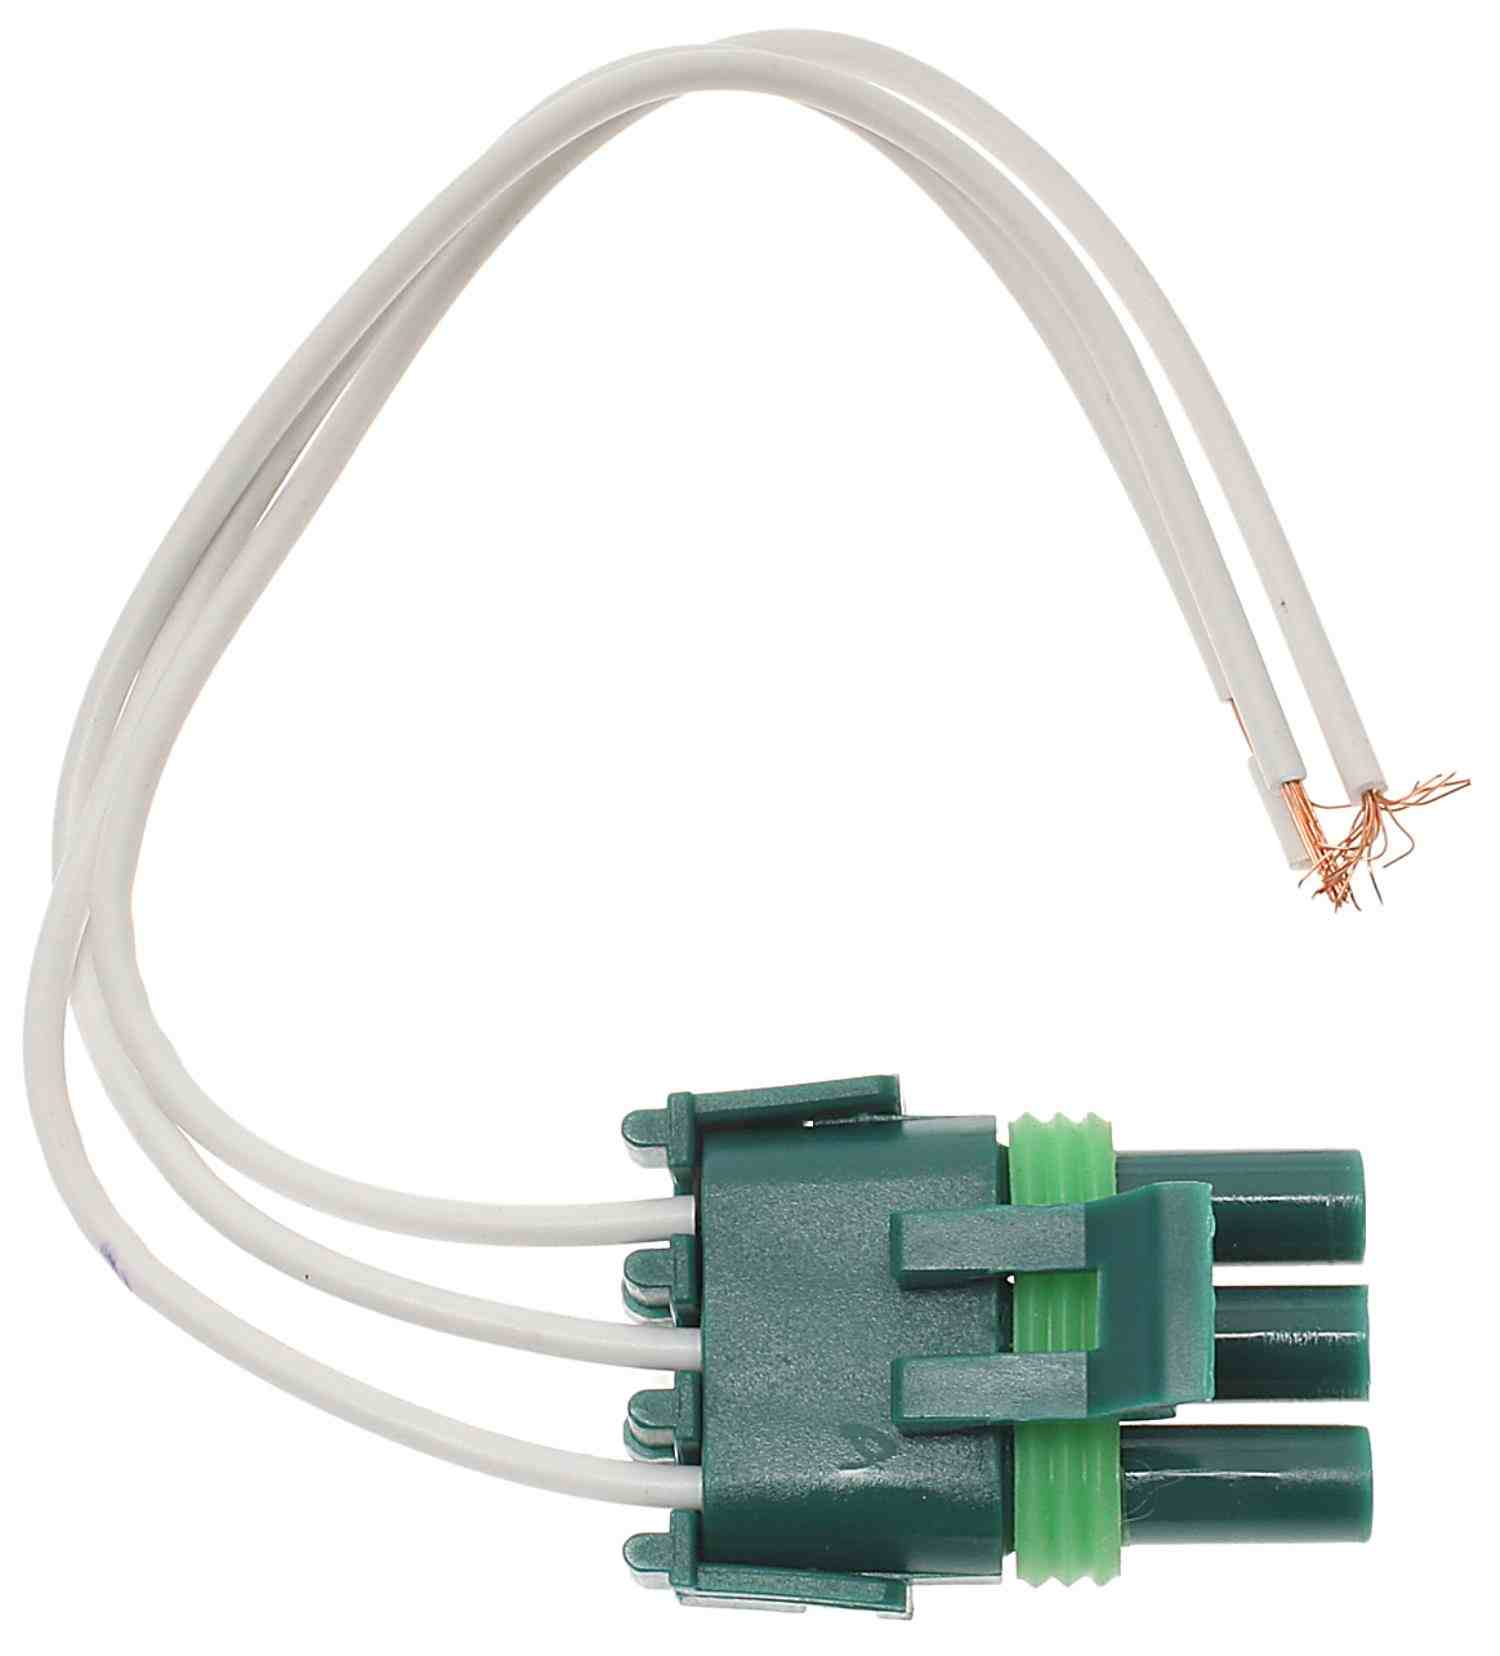 ACDELCO PROFESSIONAL - Manifold Absolute Pressure Sensor Connector - DCC PT2313